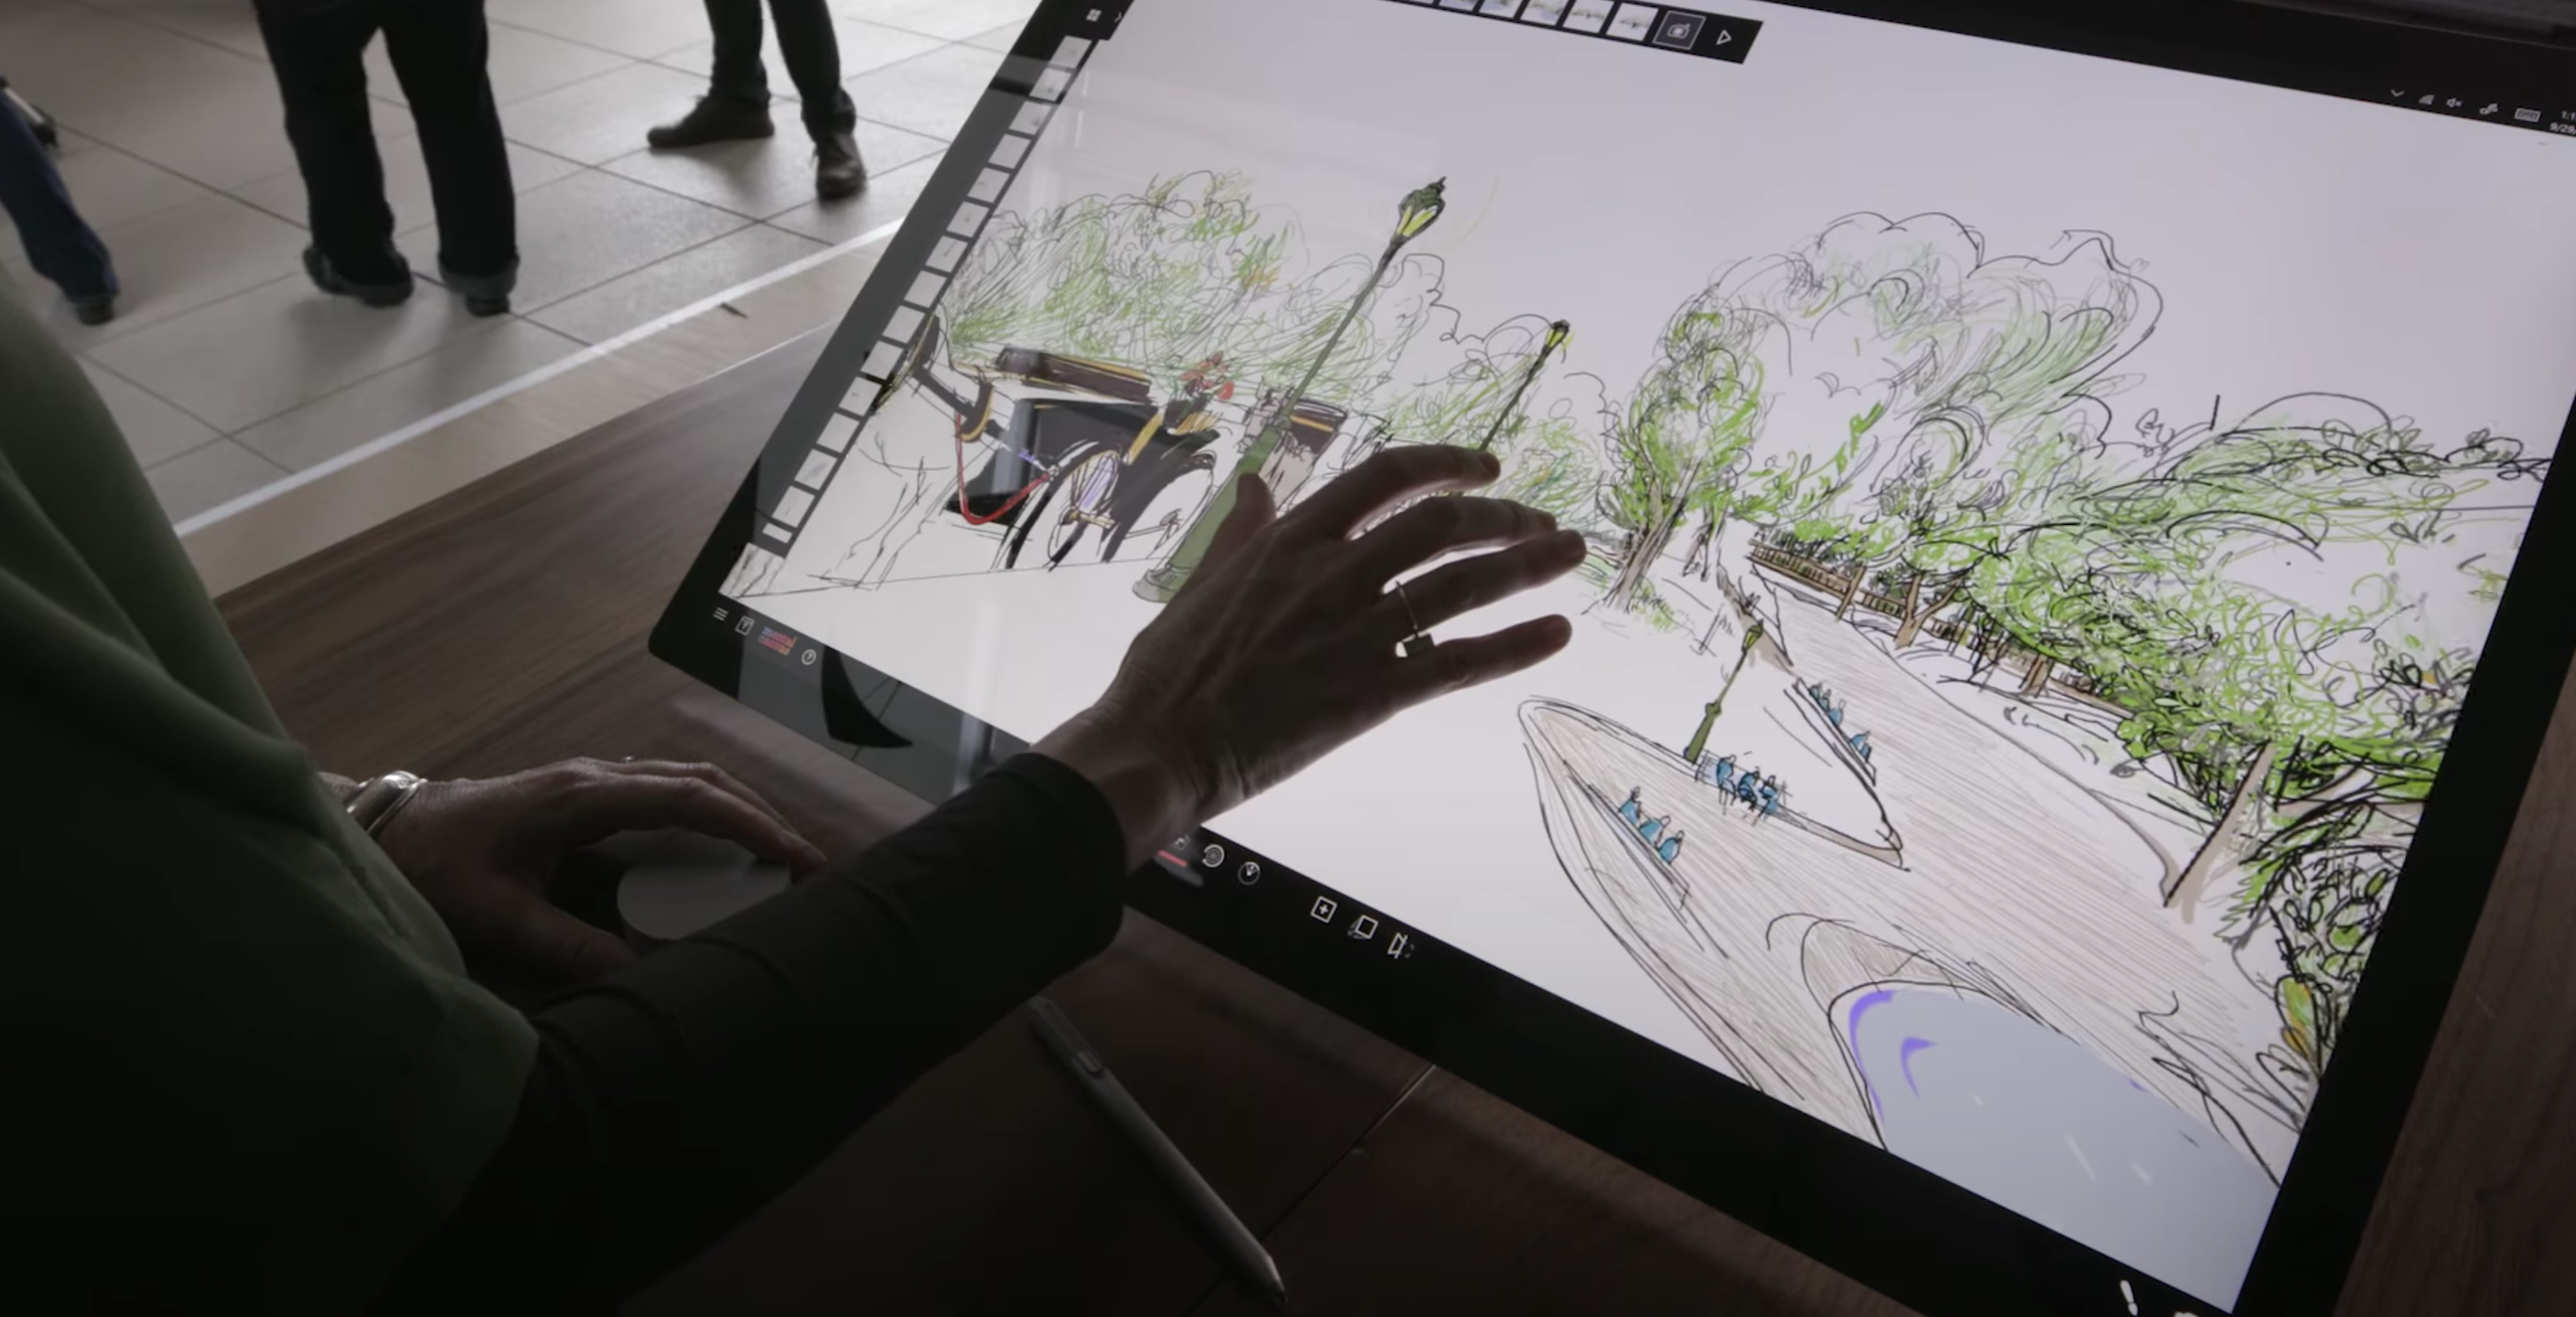 Shows a large Microsoft Surface tablet and an artists hand touching the screen.  The screen shows a Mental Canvas drawing of Central Park.